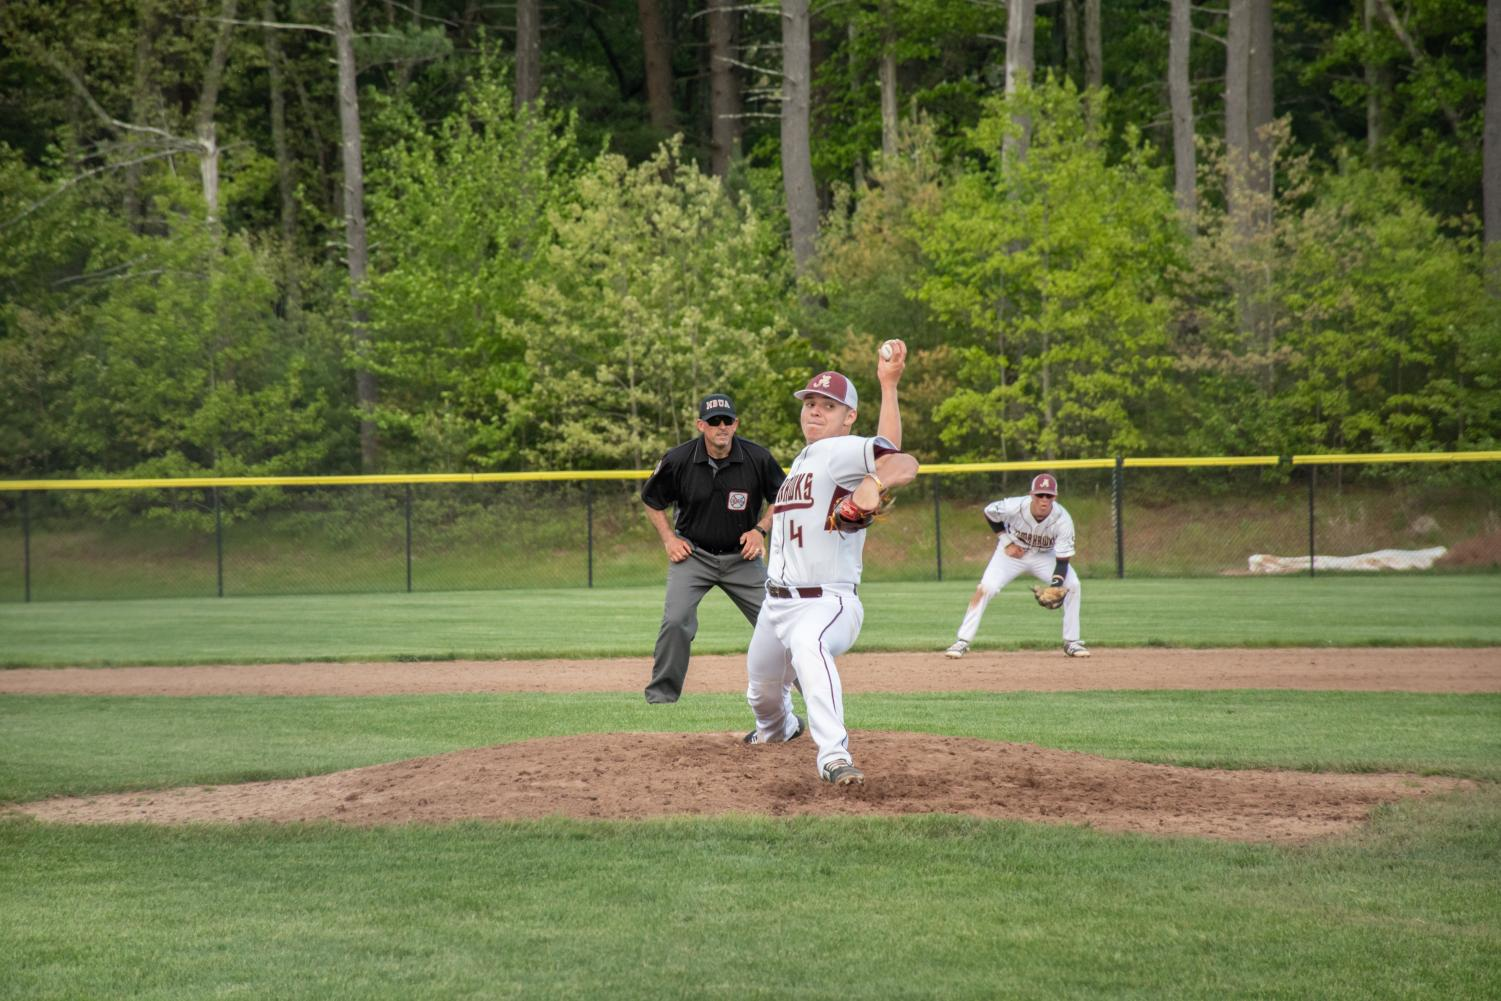 Sophomore Sam Hill delivers a pitch against Shrewsbury. The team suffered a 12-3 loss to Shrewsbury on May 20.